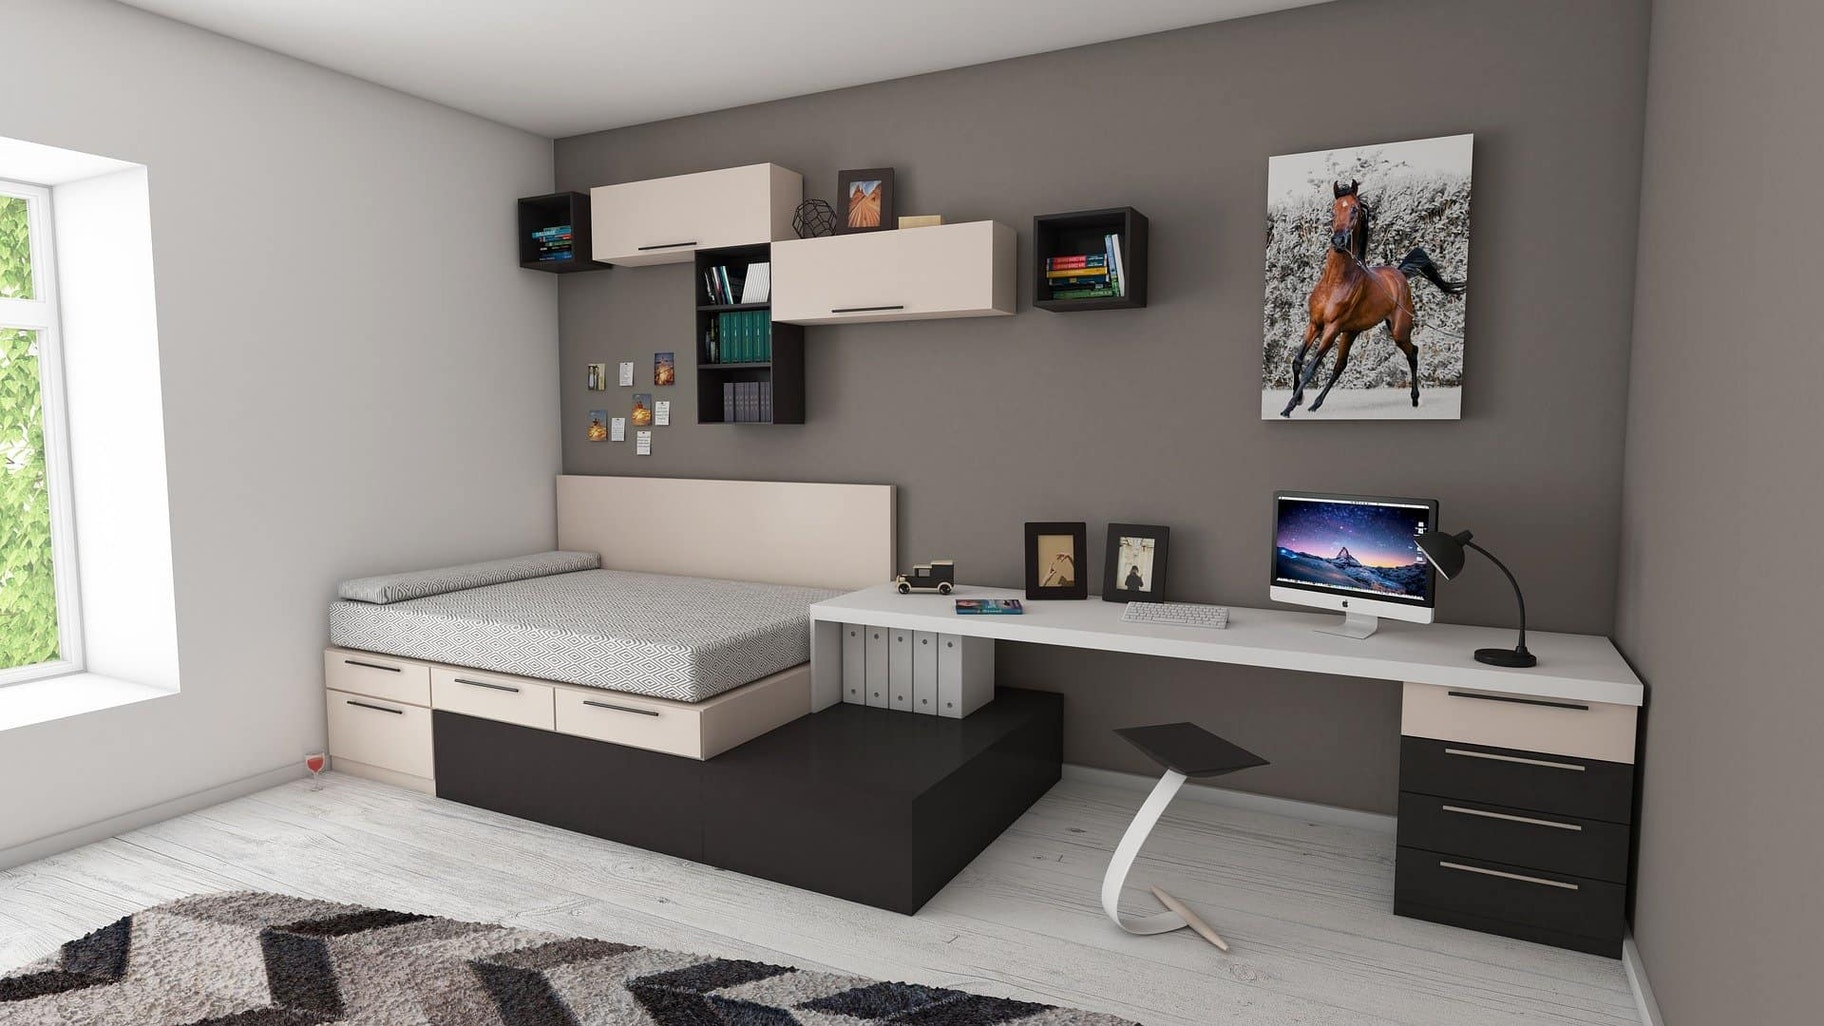 A workspace in a bedroom